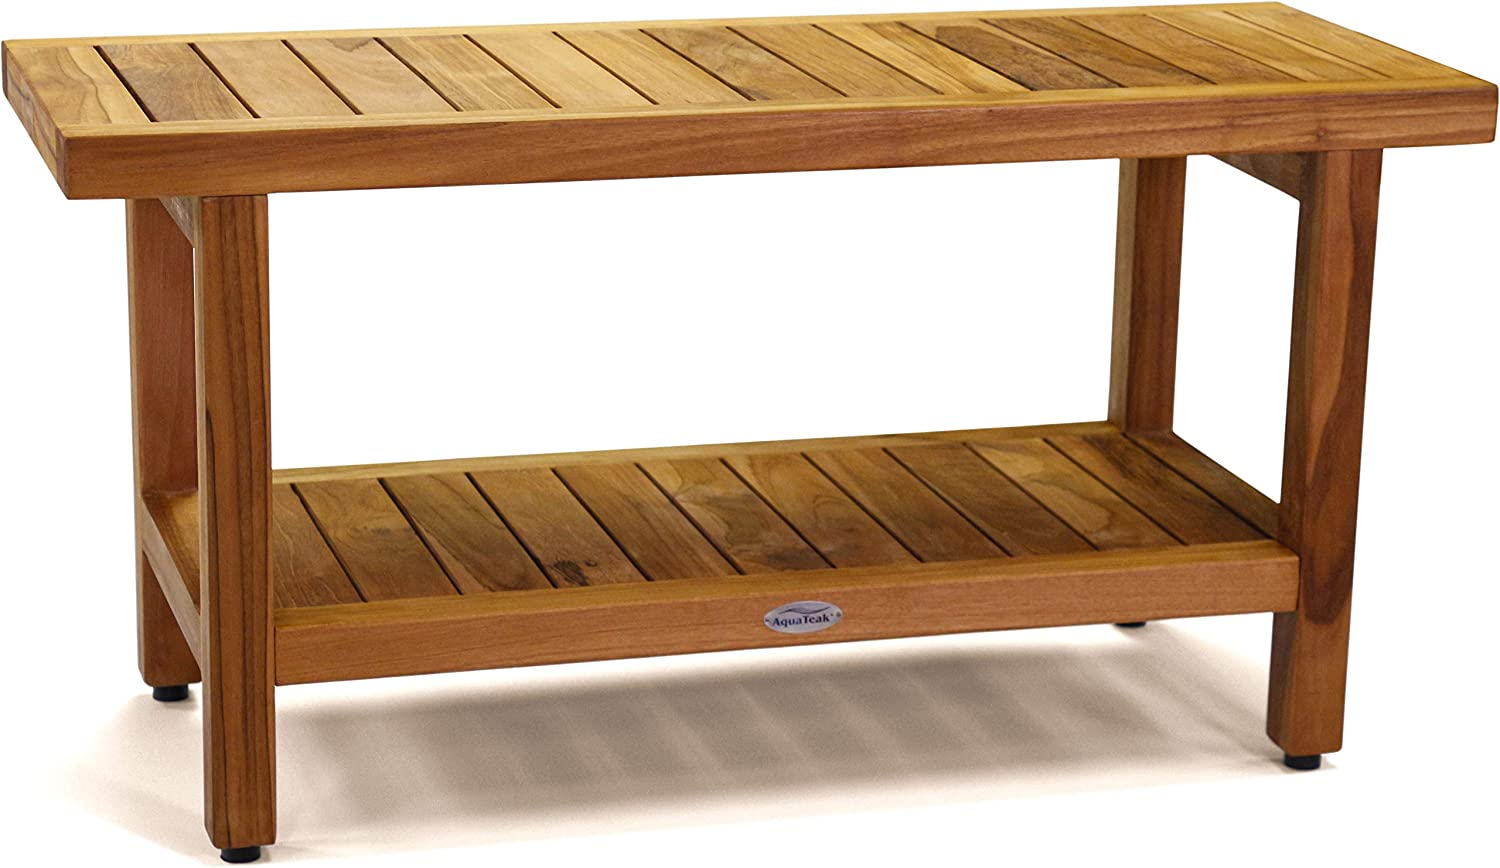 "AquaTeak The Original 36"" Spa Teak Shower Bench with Shelf 71bcvRS1SfL"